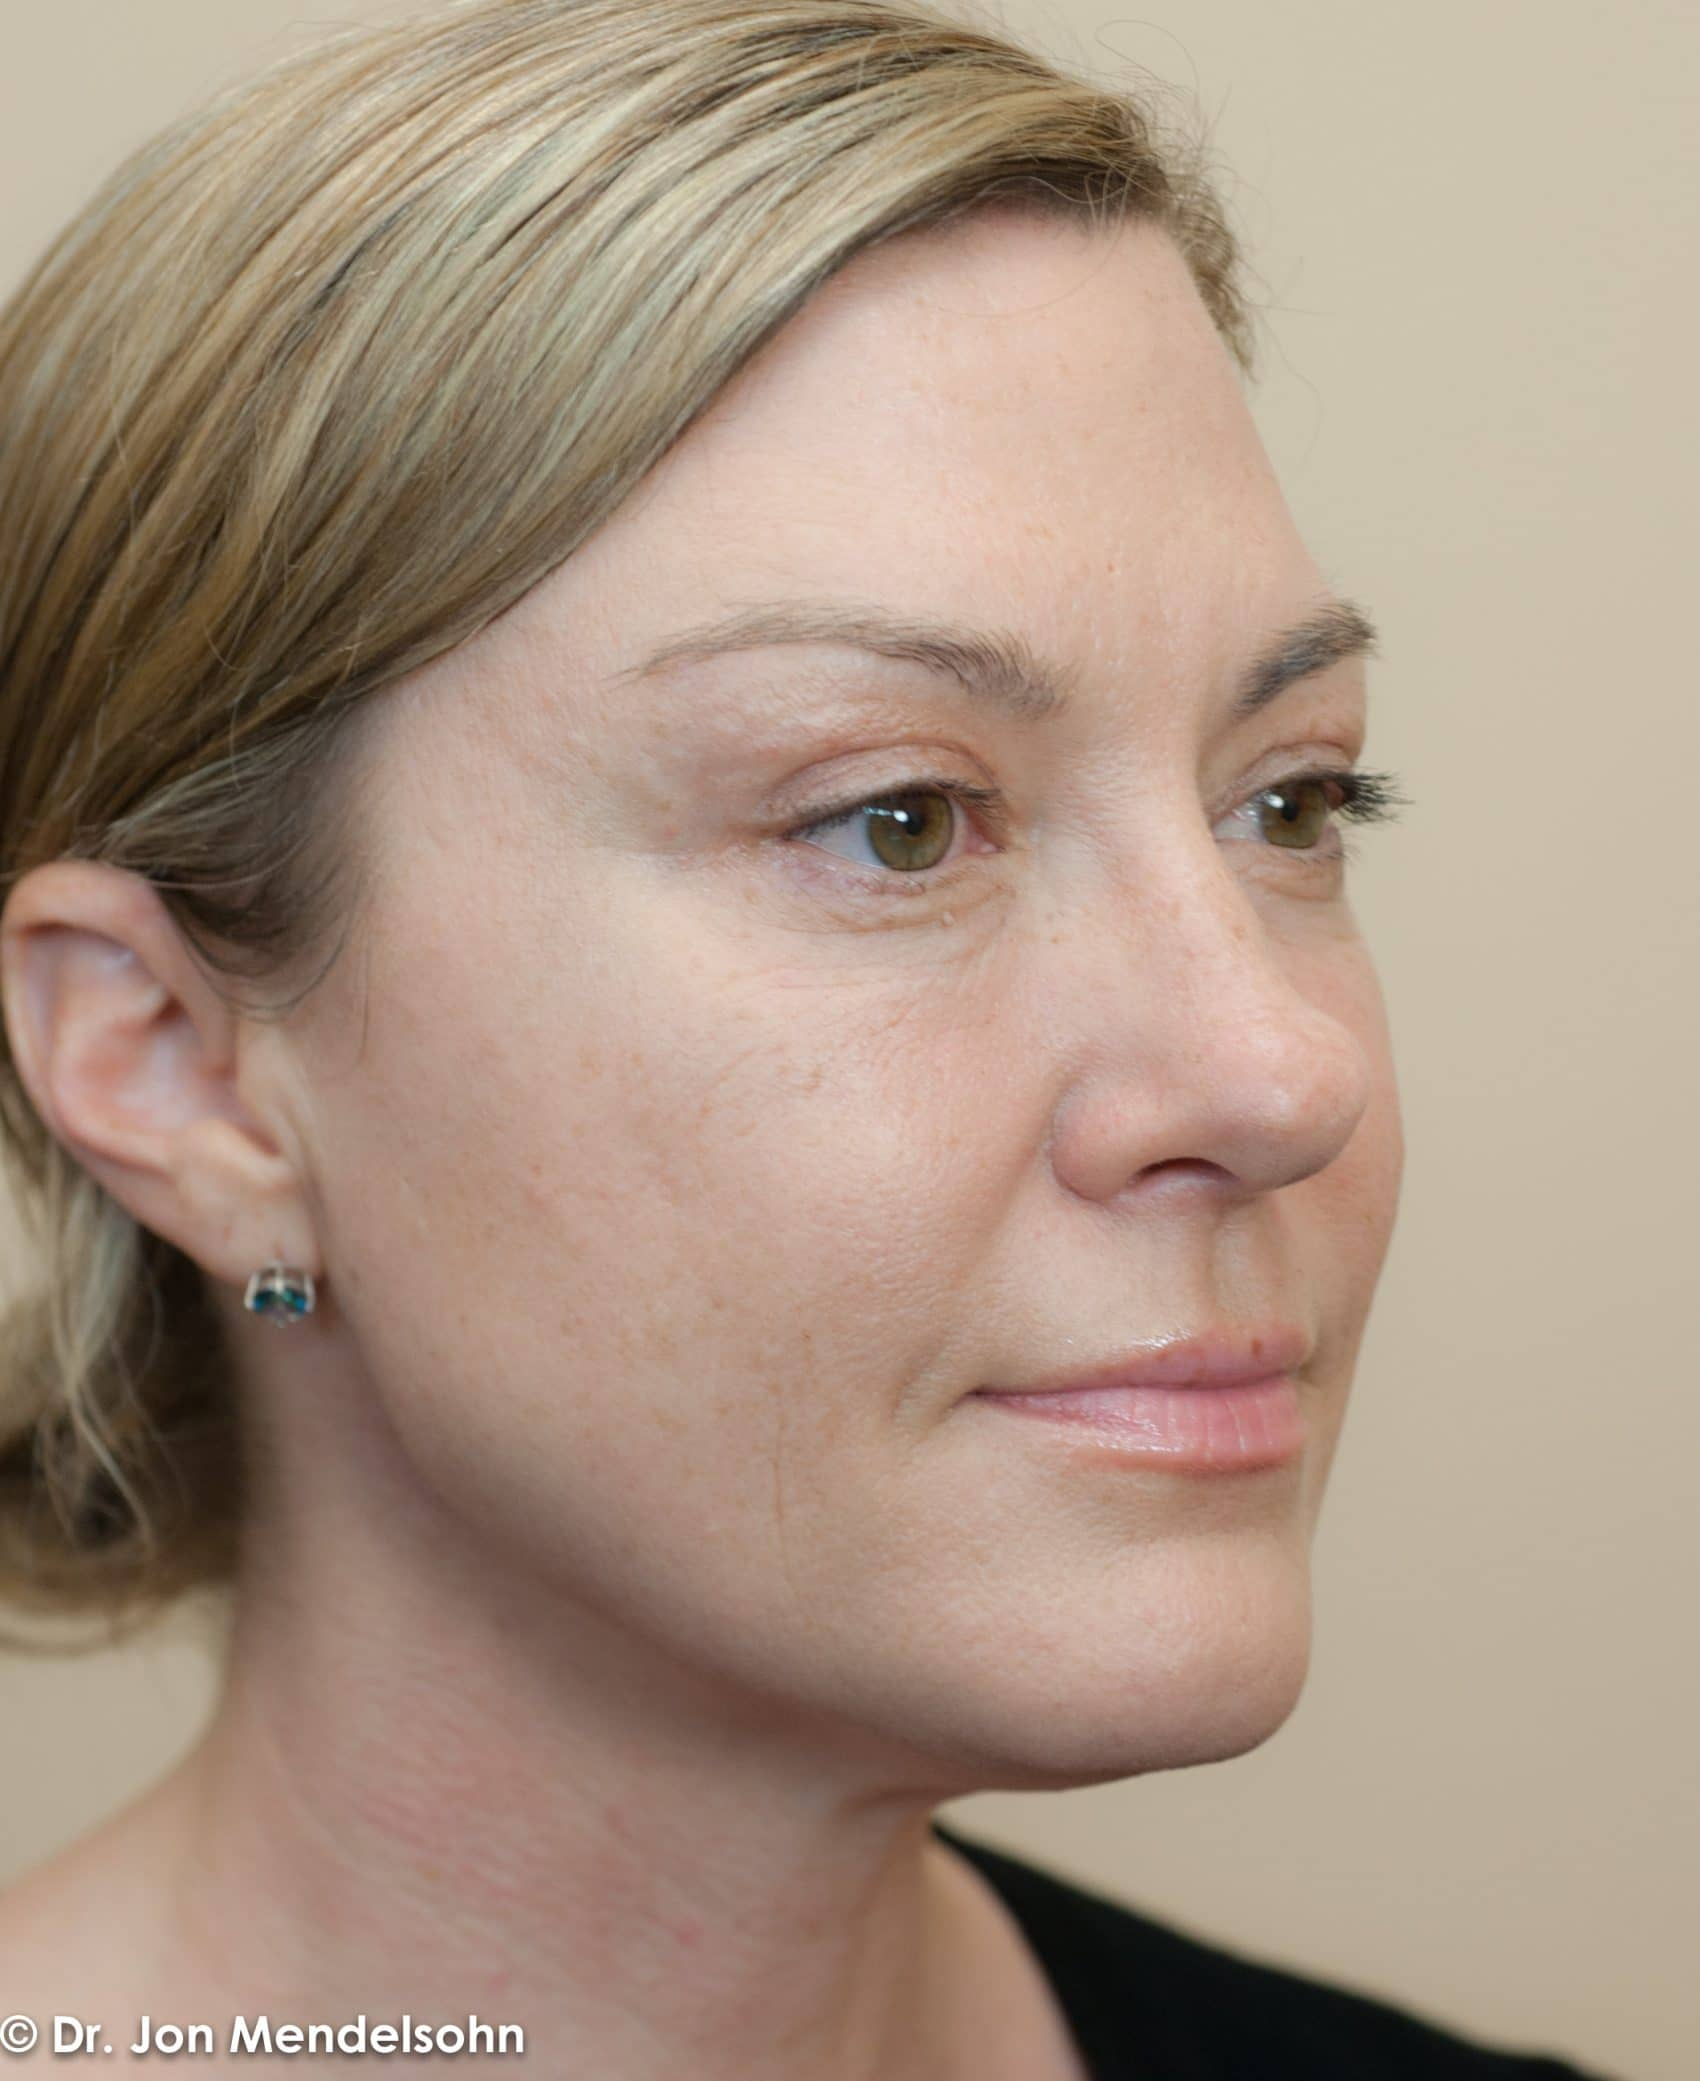 Upper-blepharoplasty-eyelid-surgery-cincinnati-dr-jon-mendelsohn-best-eyelid-surgery-plastic-surgery-realself-truseselfies-three-quarter-right-after-Krishock_Laurissa-15826-2